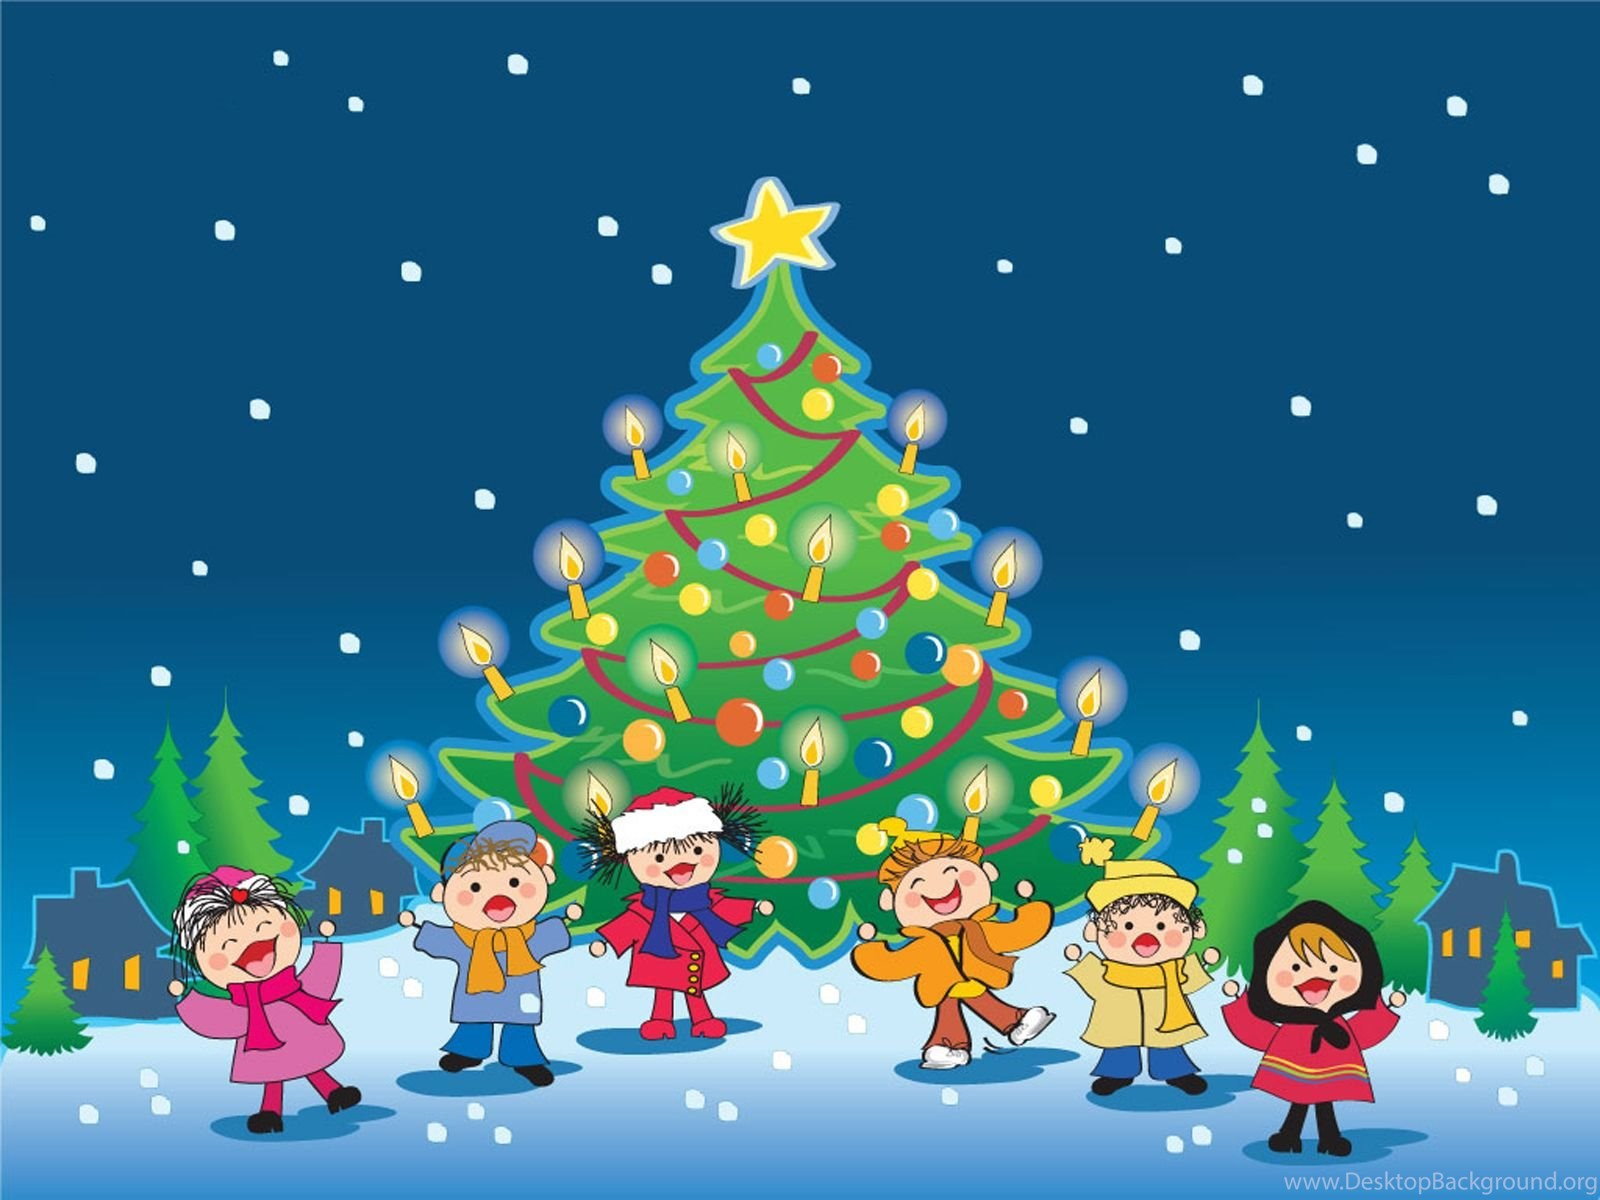 Kids Christmas Pictures Wallpapers High Definition Desktop Background